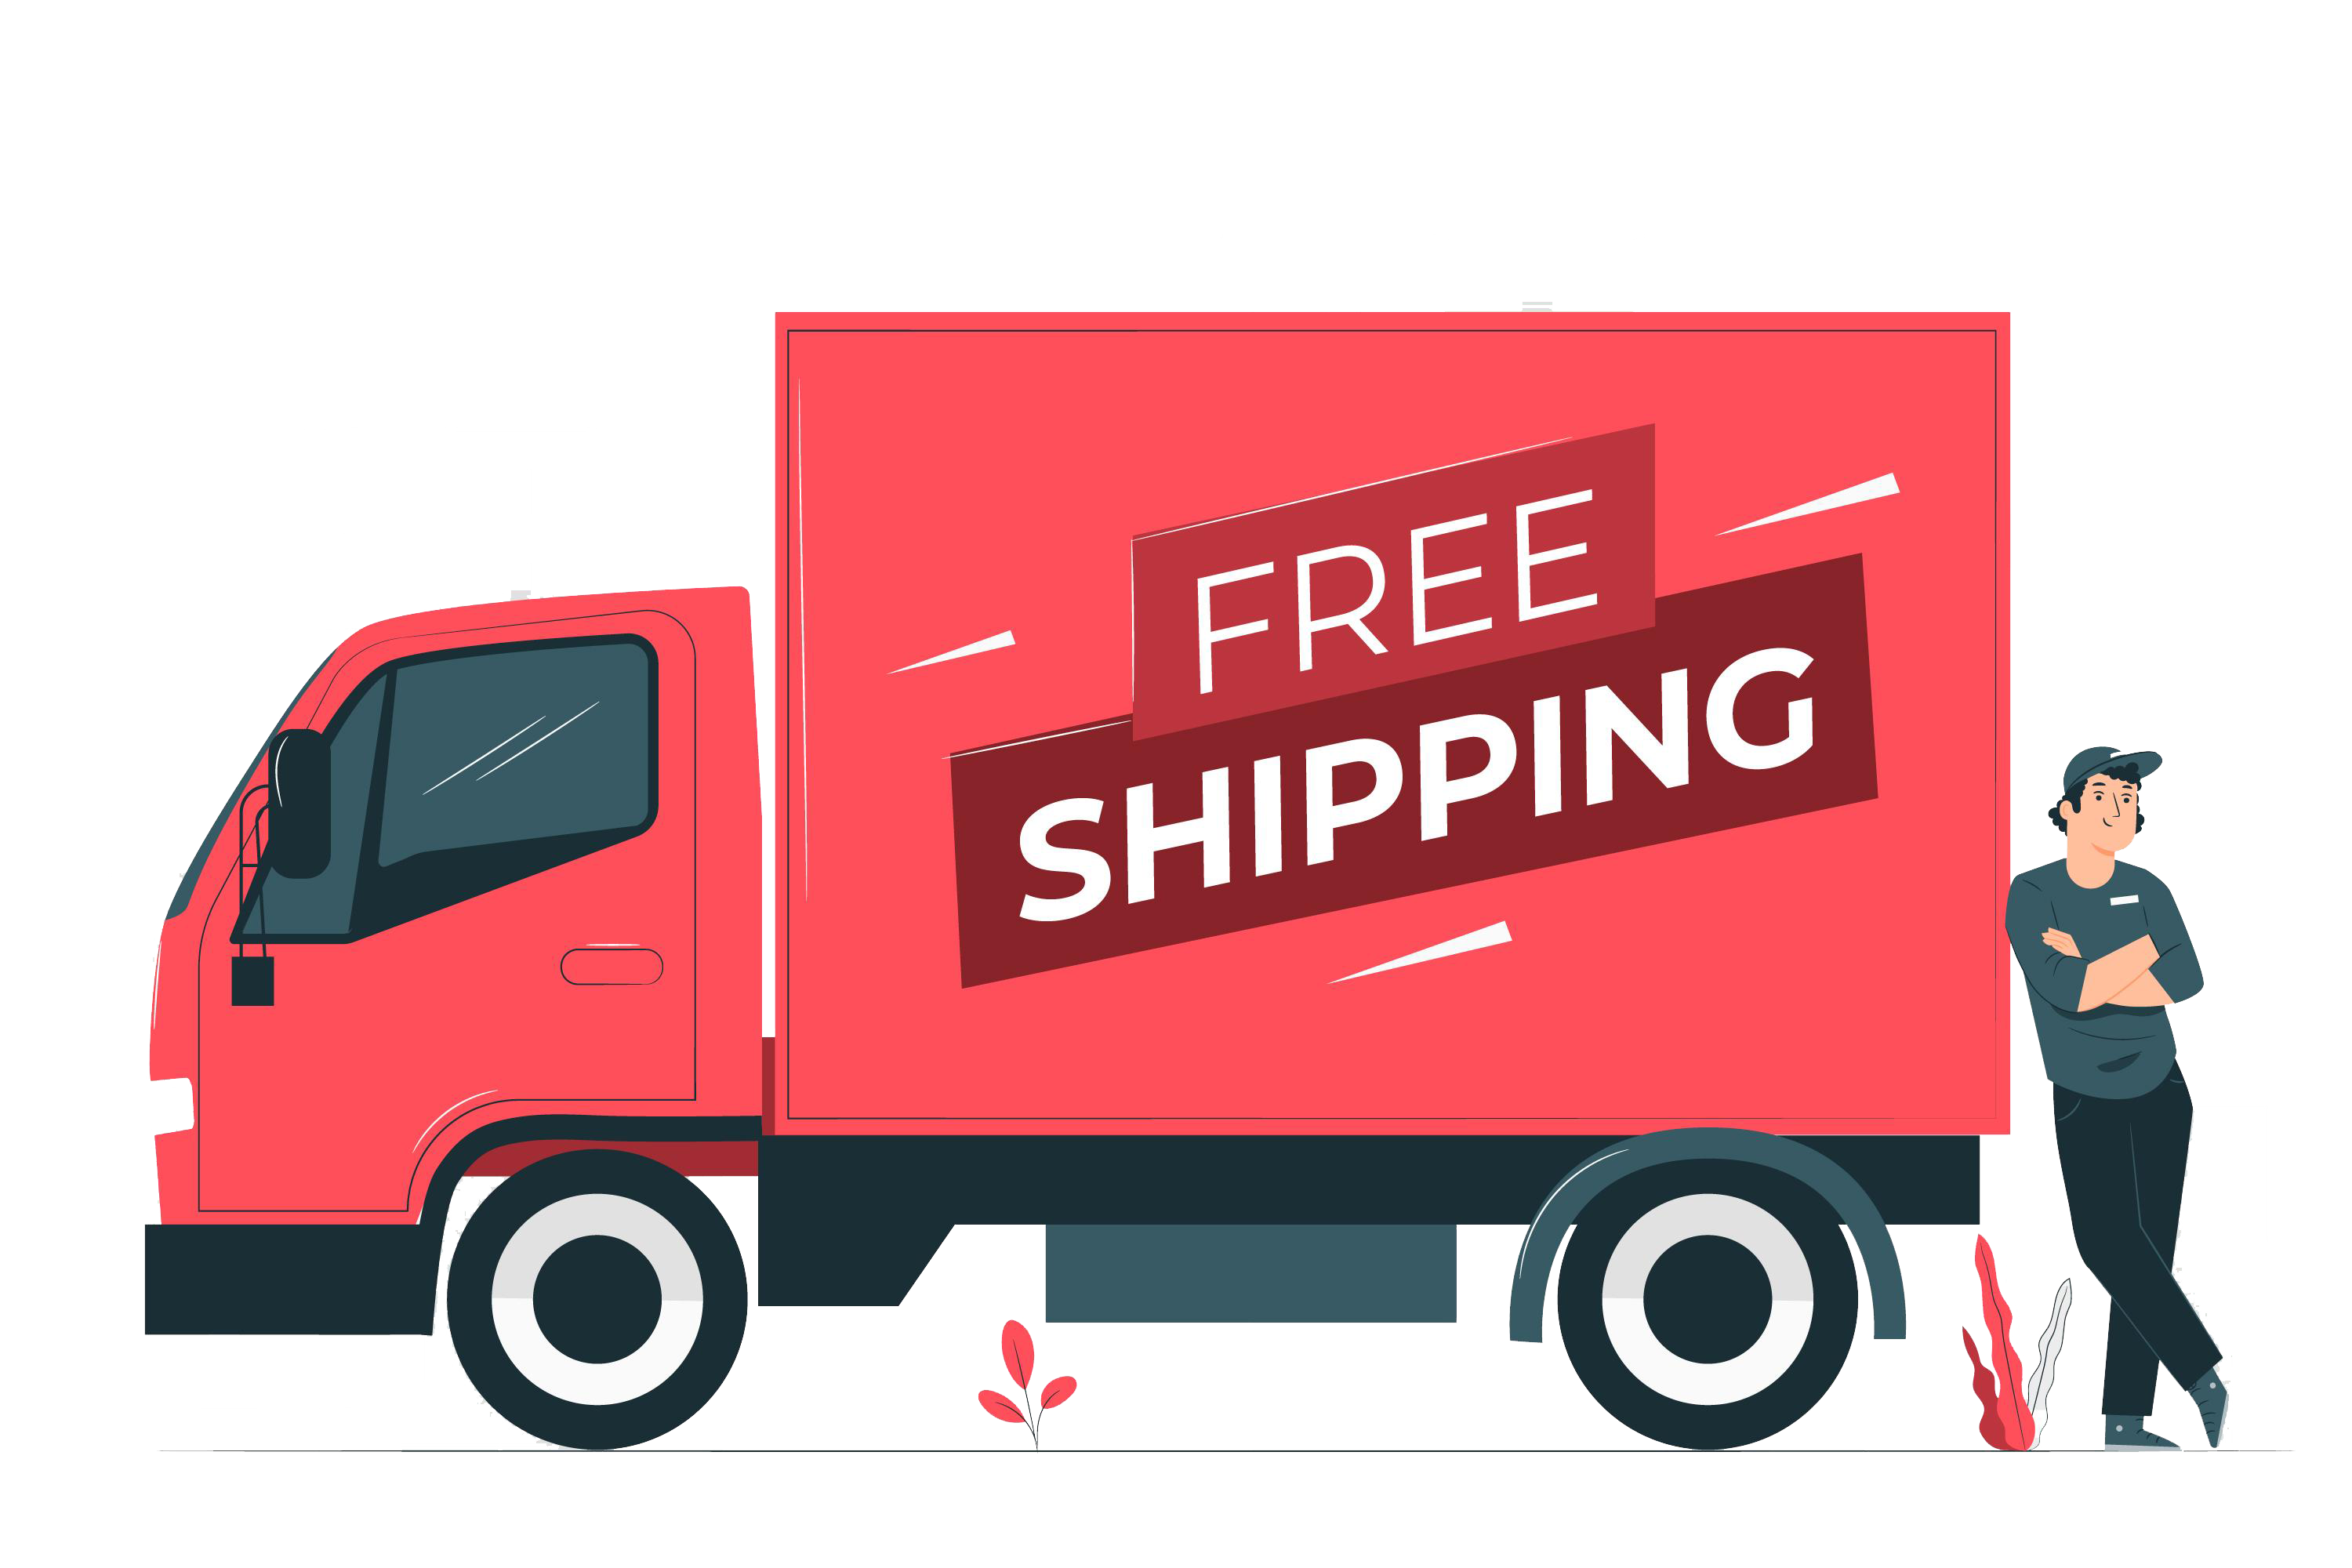 free shipping $40 or more